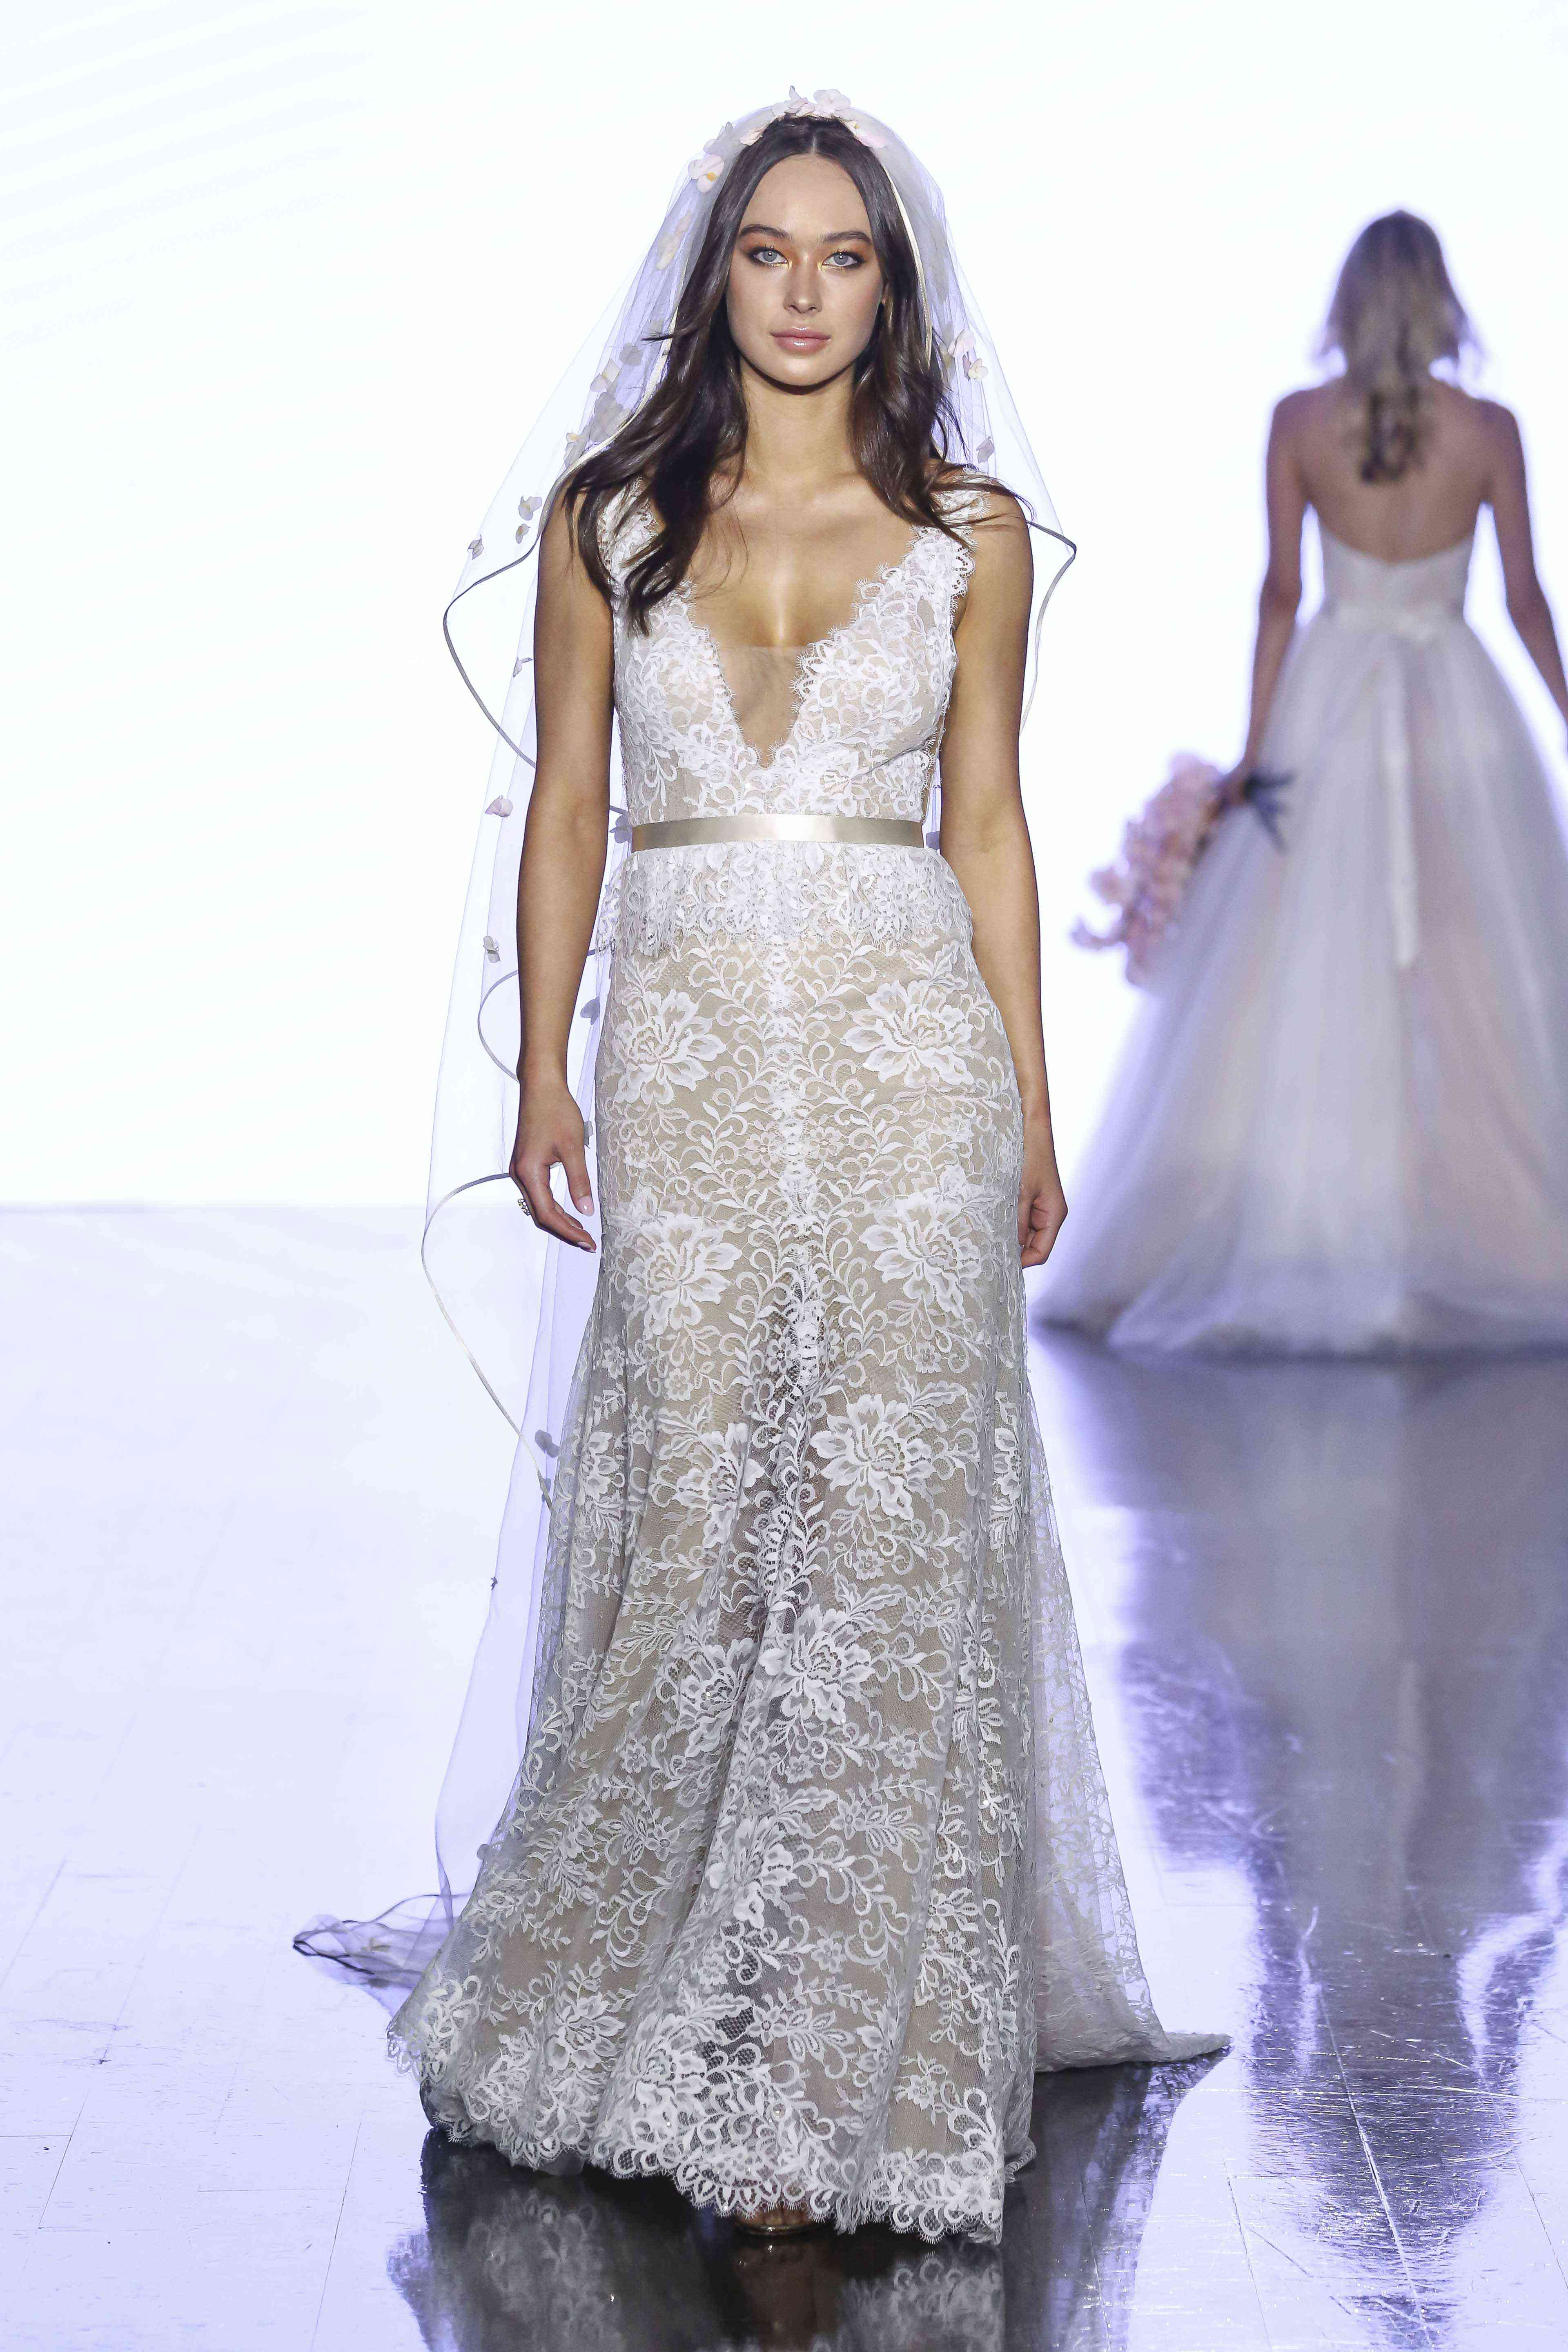 Model in sleeveless beaded lace column wedding gown with a plunging illusion neckline and satin ribbon belt